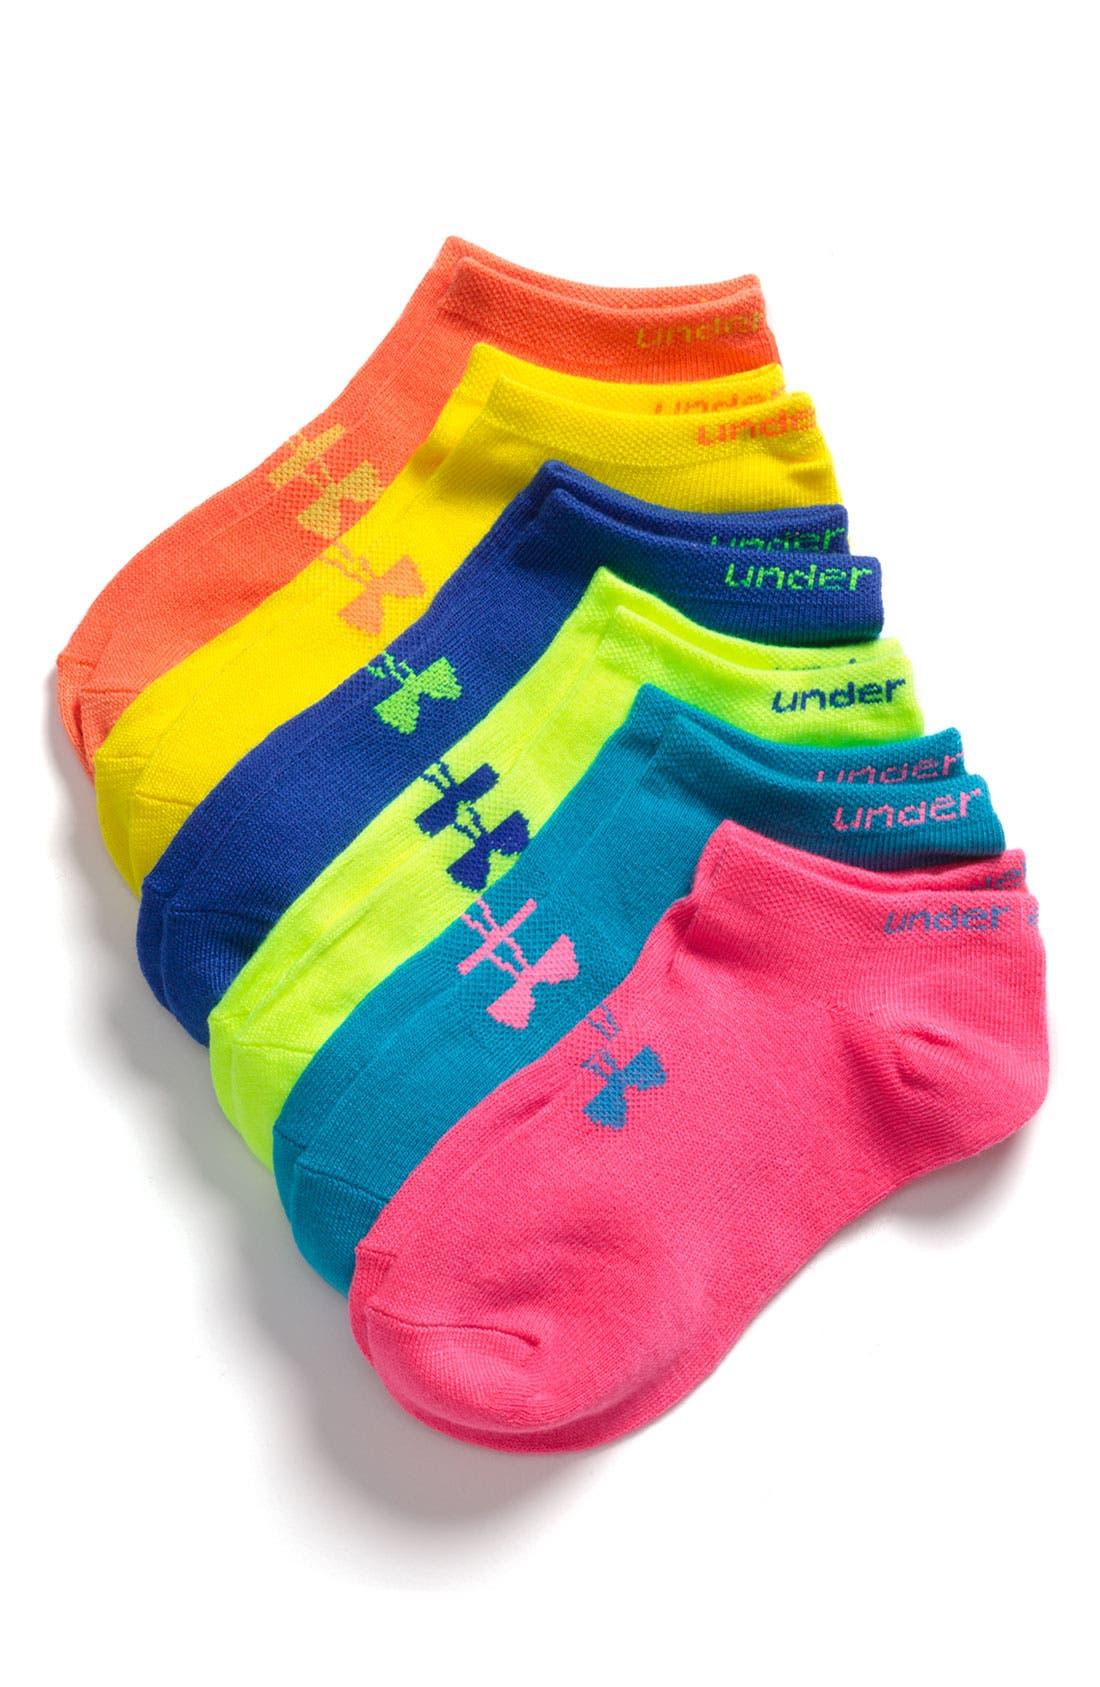 Main Image - Under Armour No-Show Socks (6-Pack)(Big Girls)